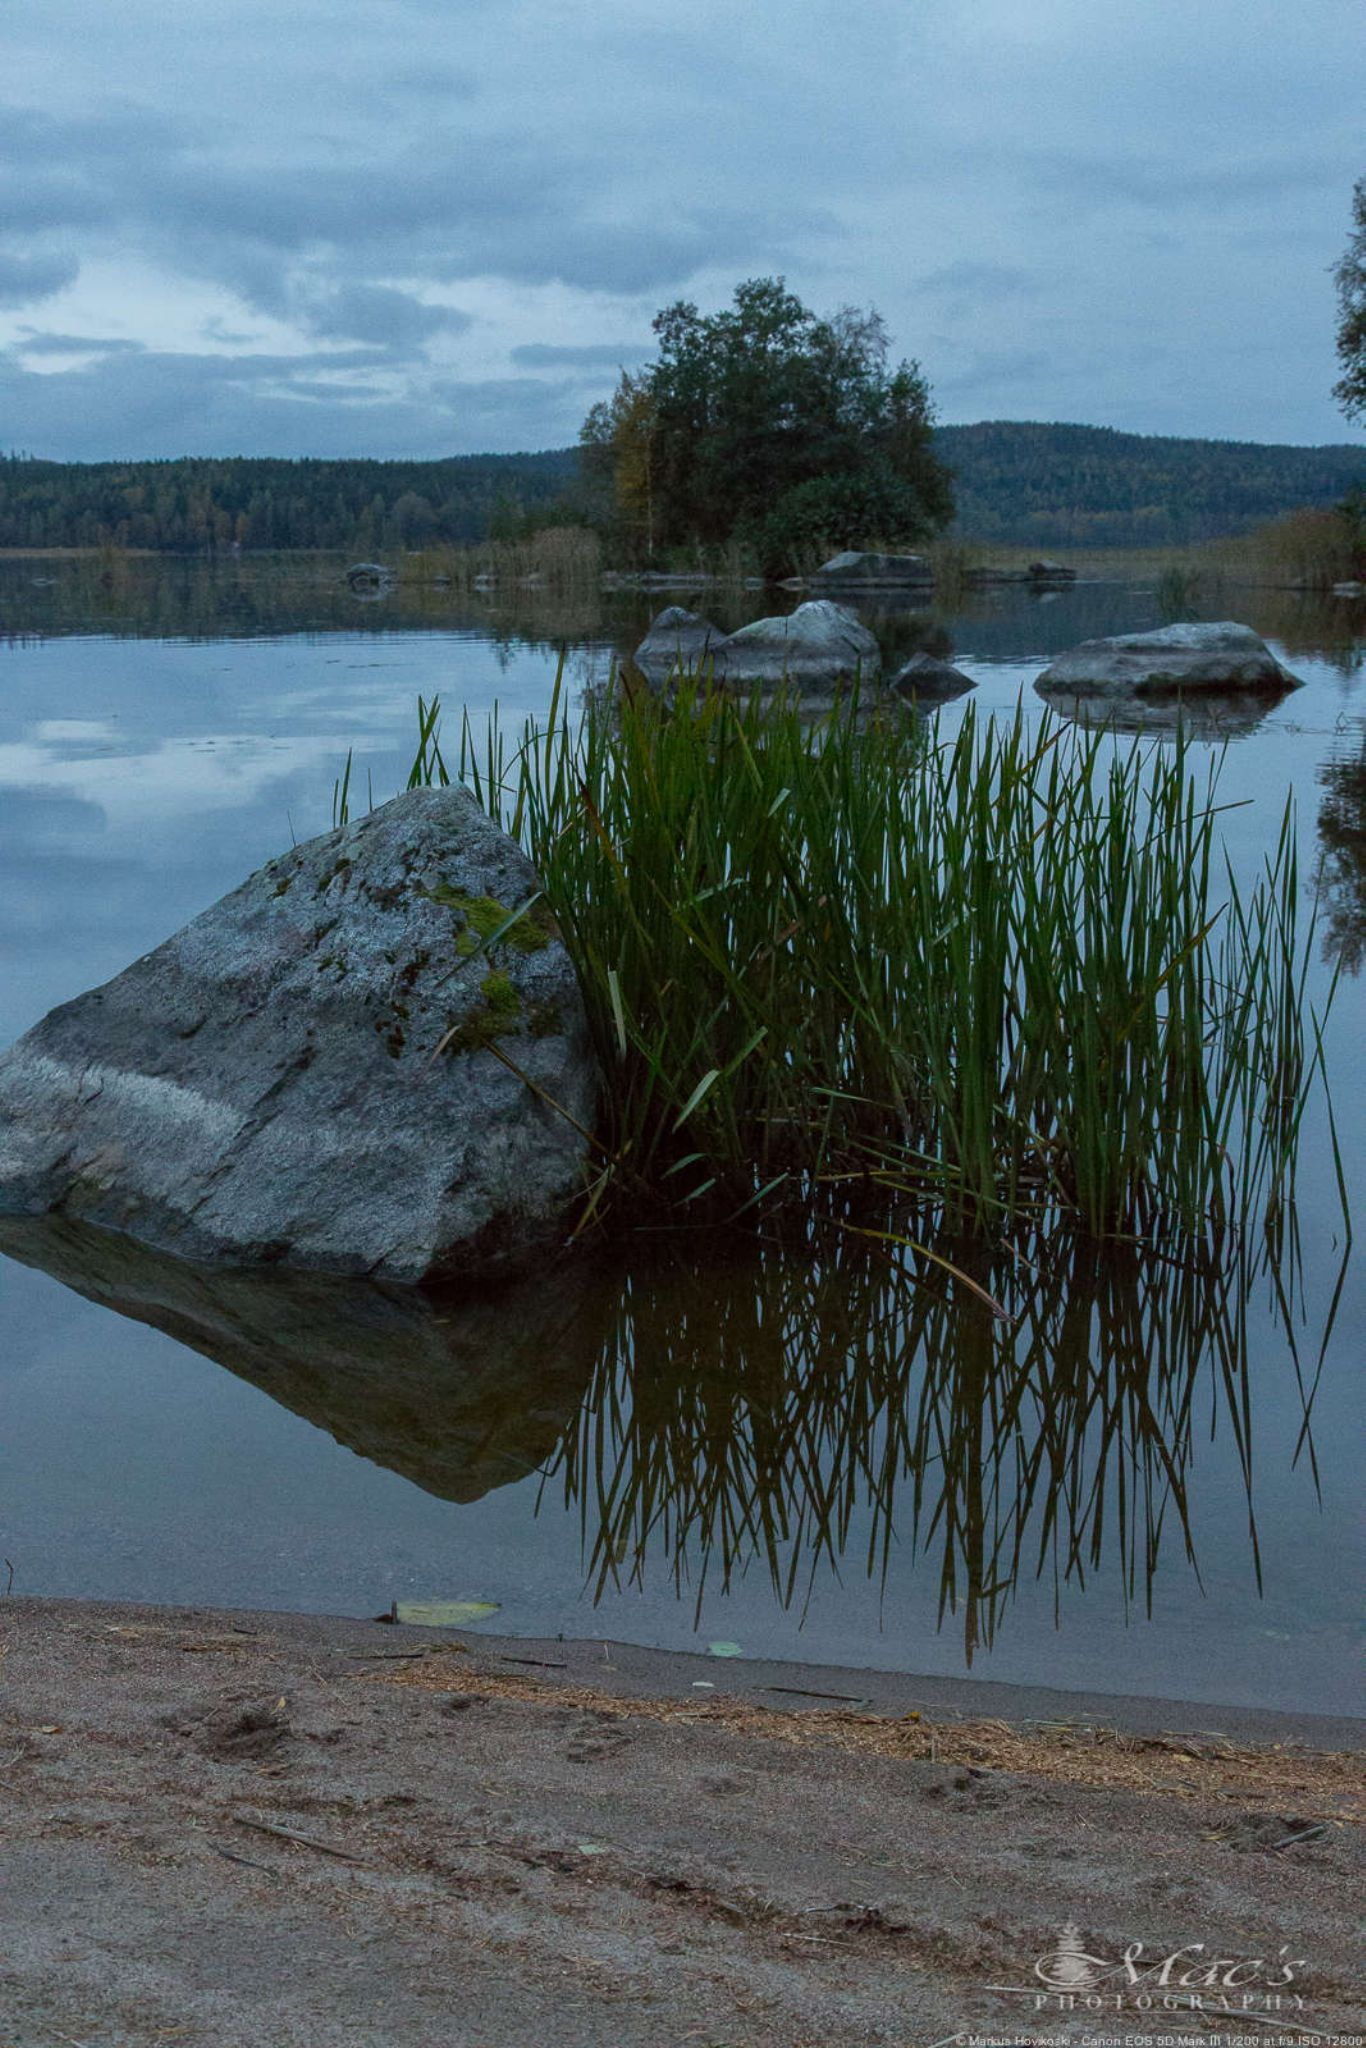 Waterscape by Mac's Photography